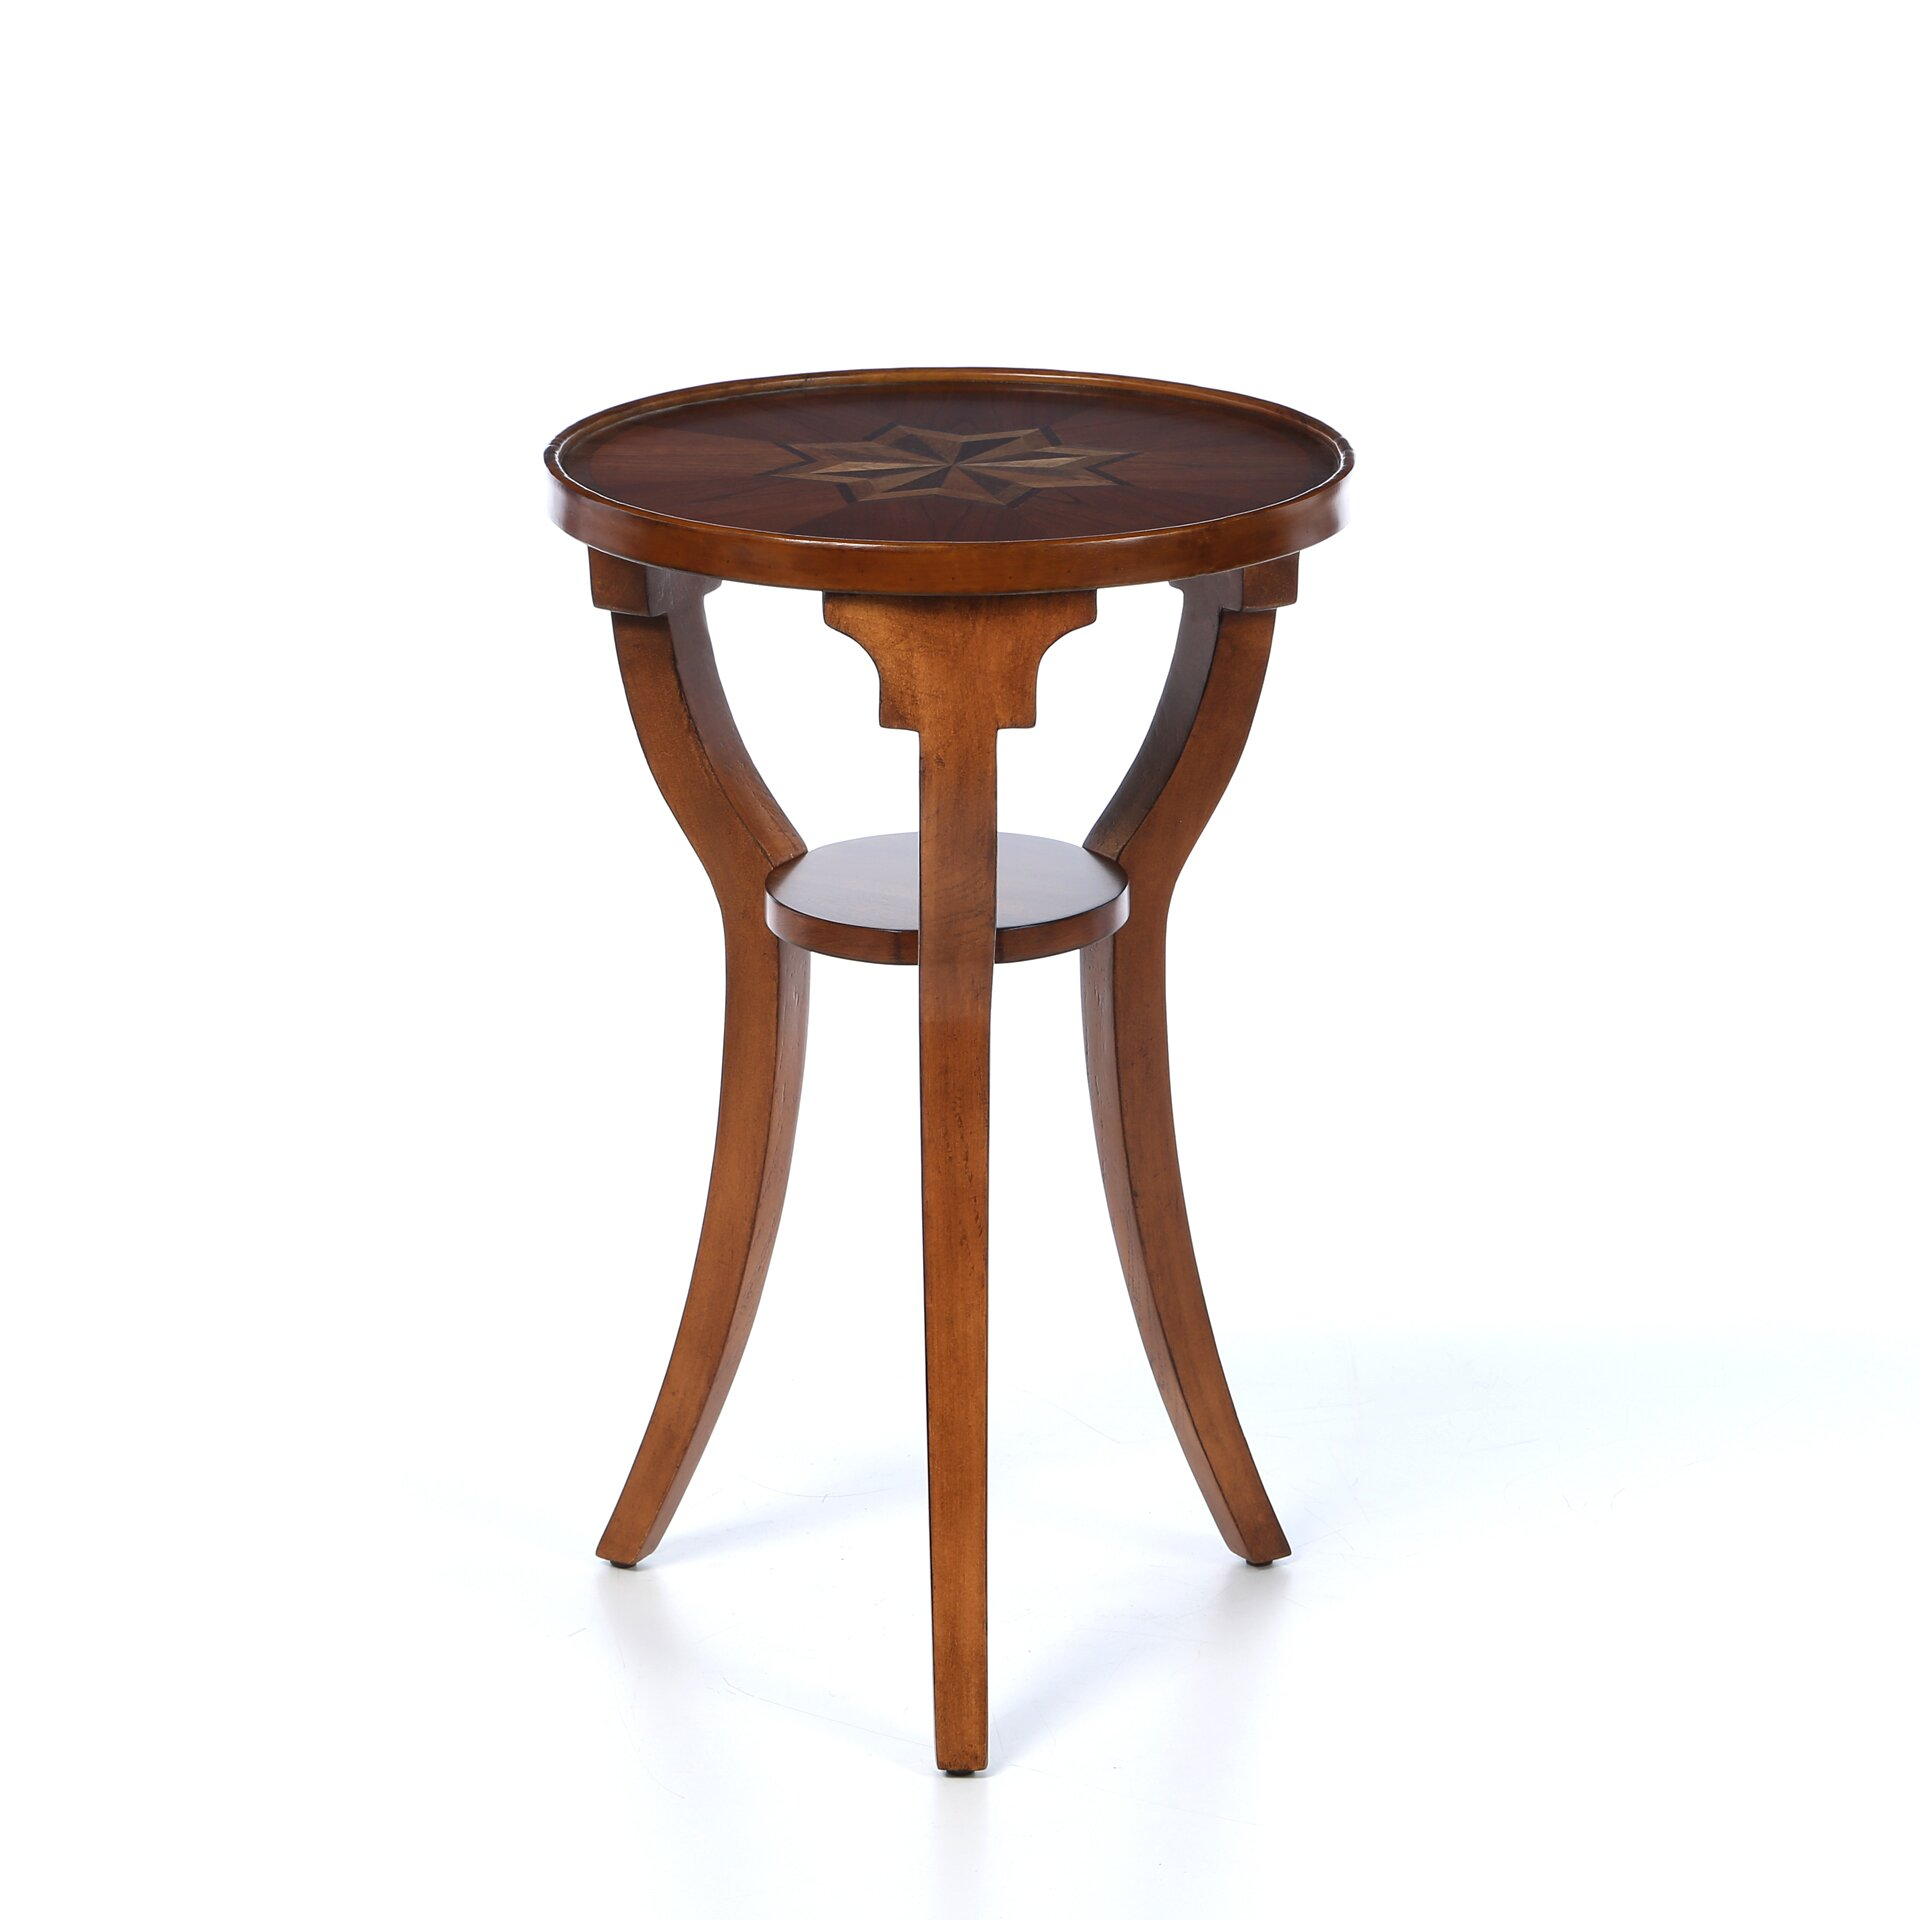 Alcott hill riley round accent table reviews wayfair for Round end tables